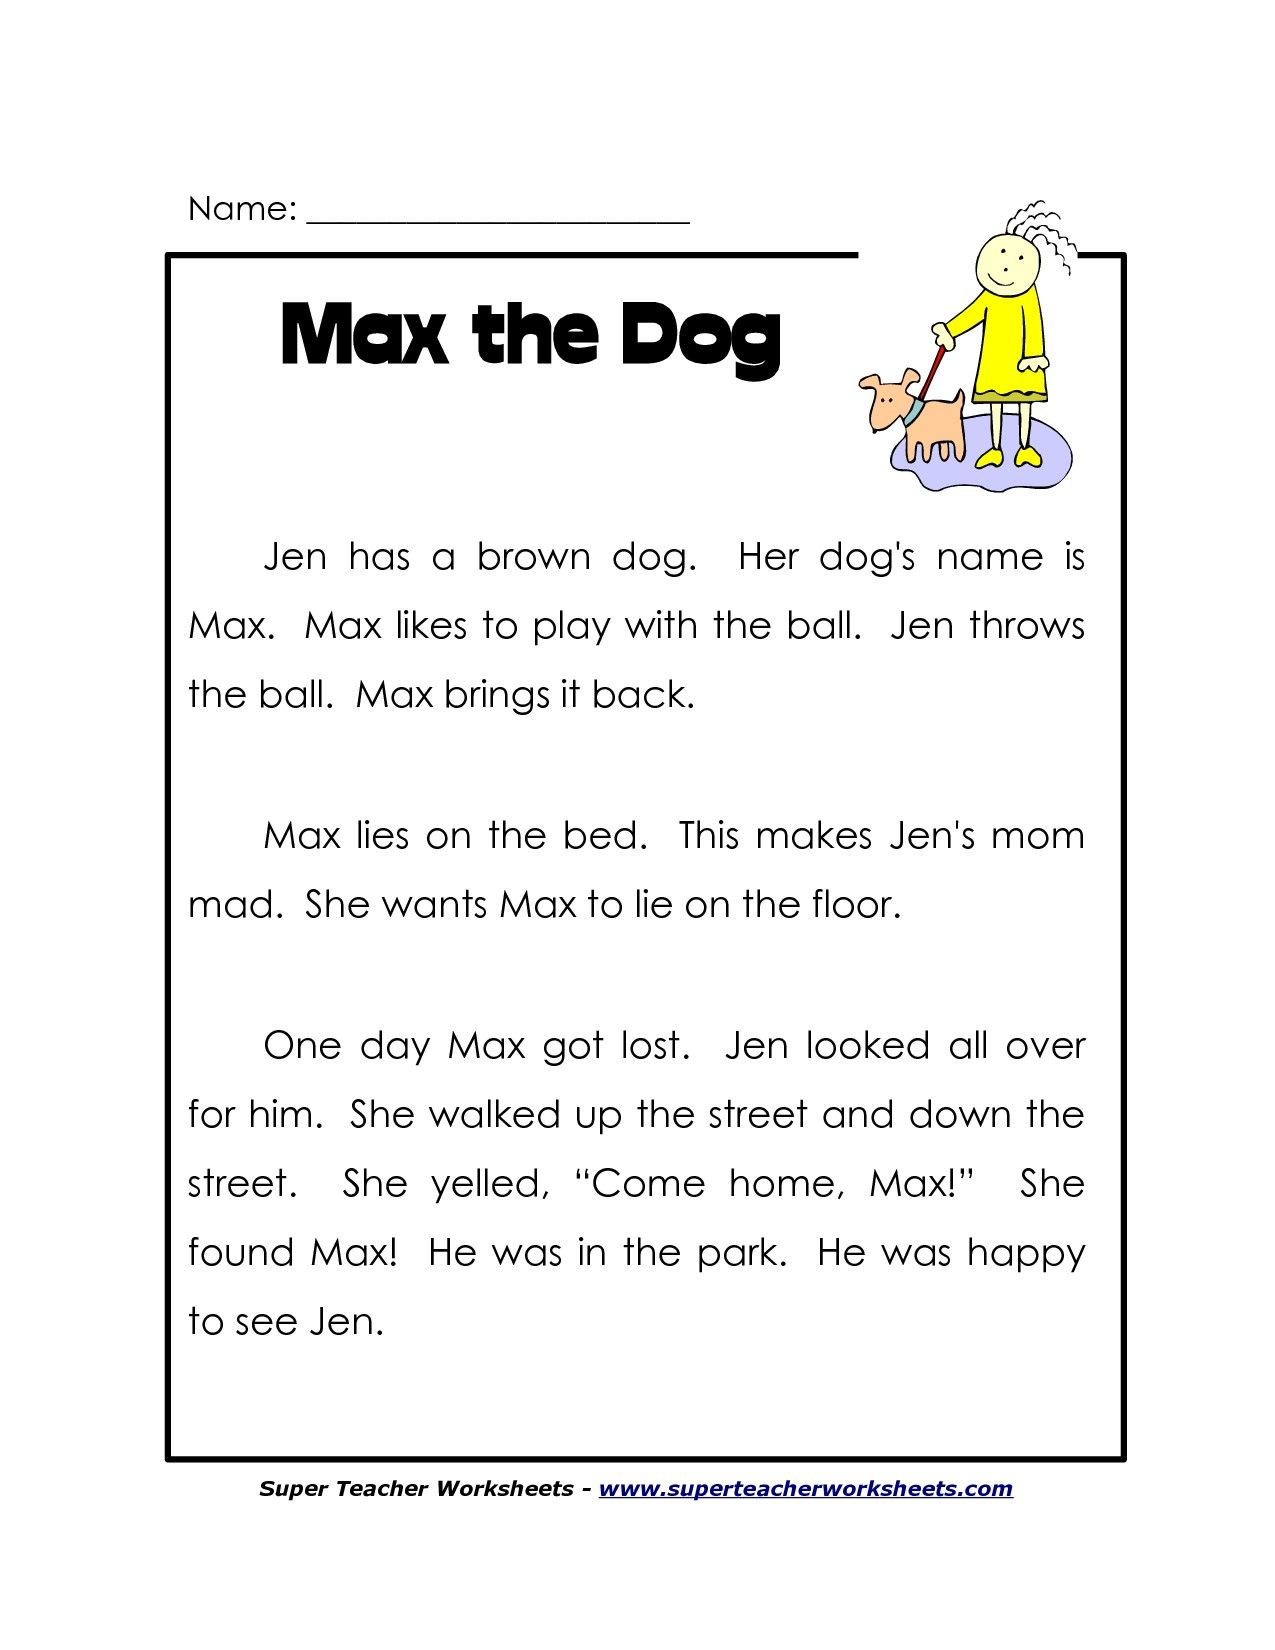 Worksheets Reading Worksheets For 1st Grade 1st grade reading worksheets free lots more on superteacherworksheets com